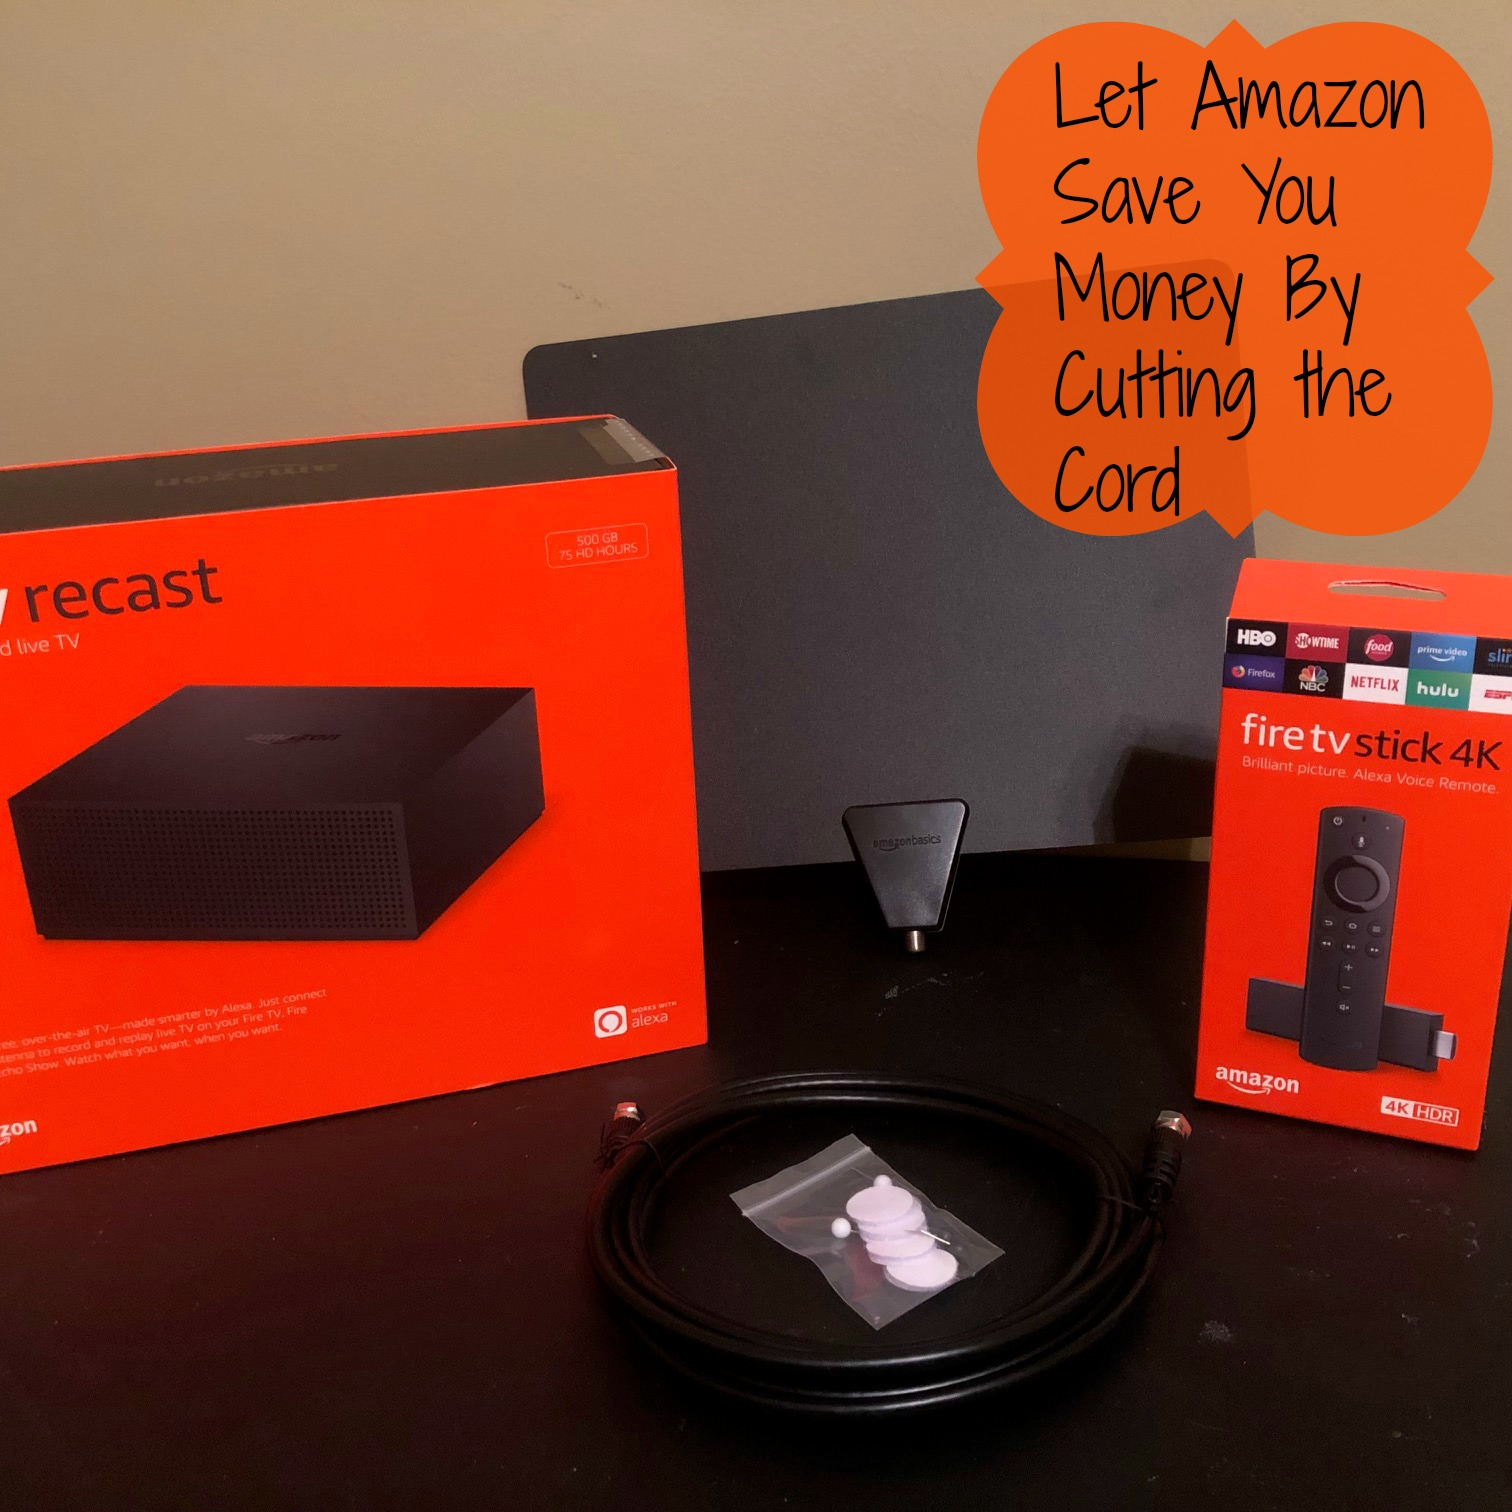 Let Amazon Save You Money By Cutting the Cord